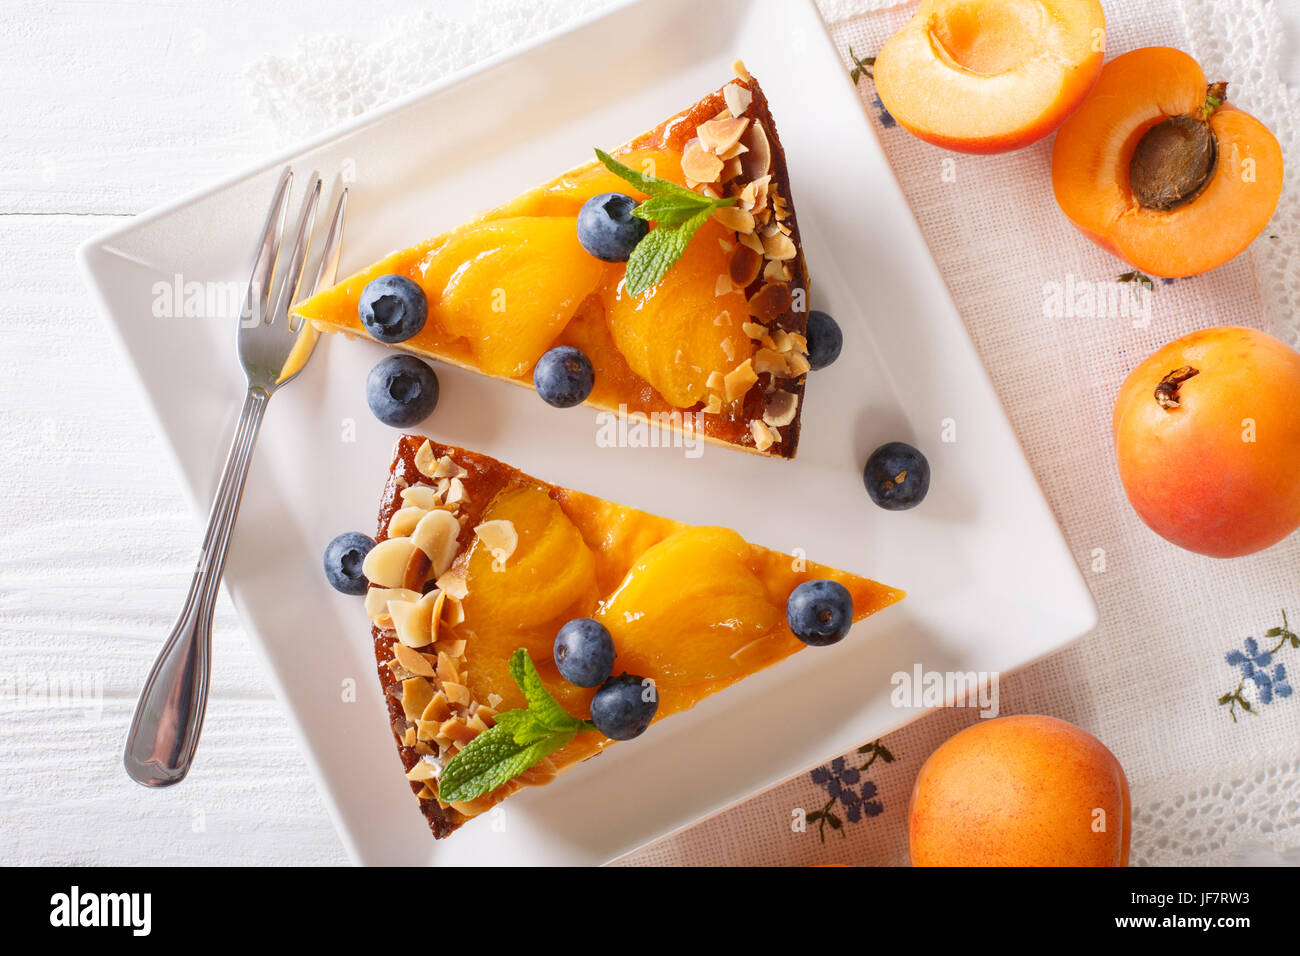 Apricot pie with blueberries and nuts close-up on a plate. horizontal view from above - Stock Image